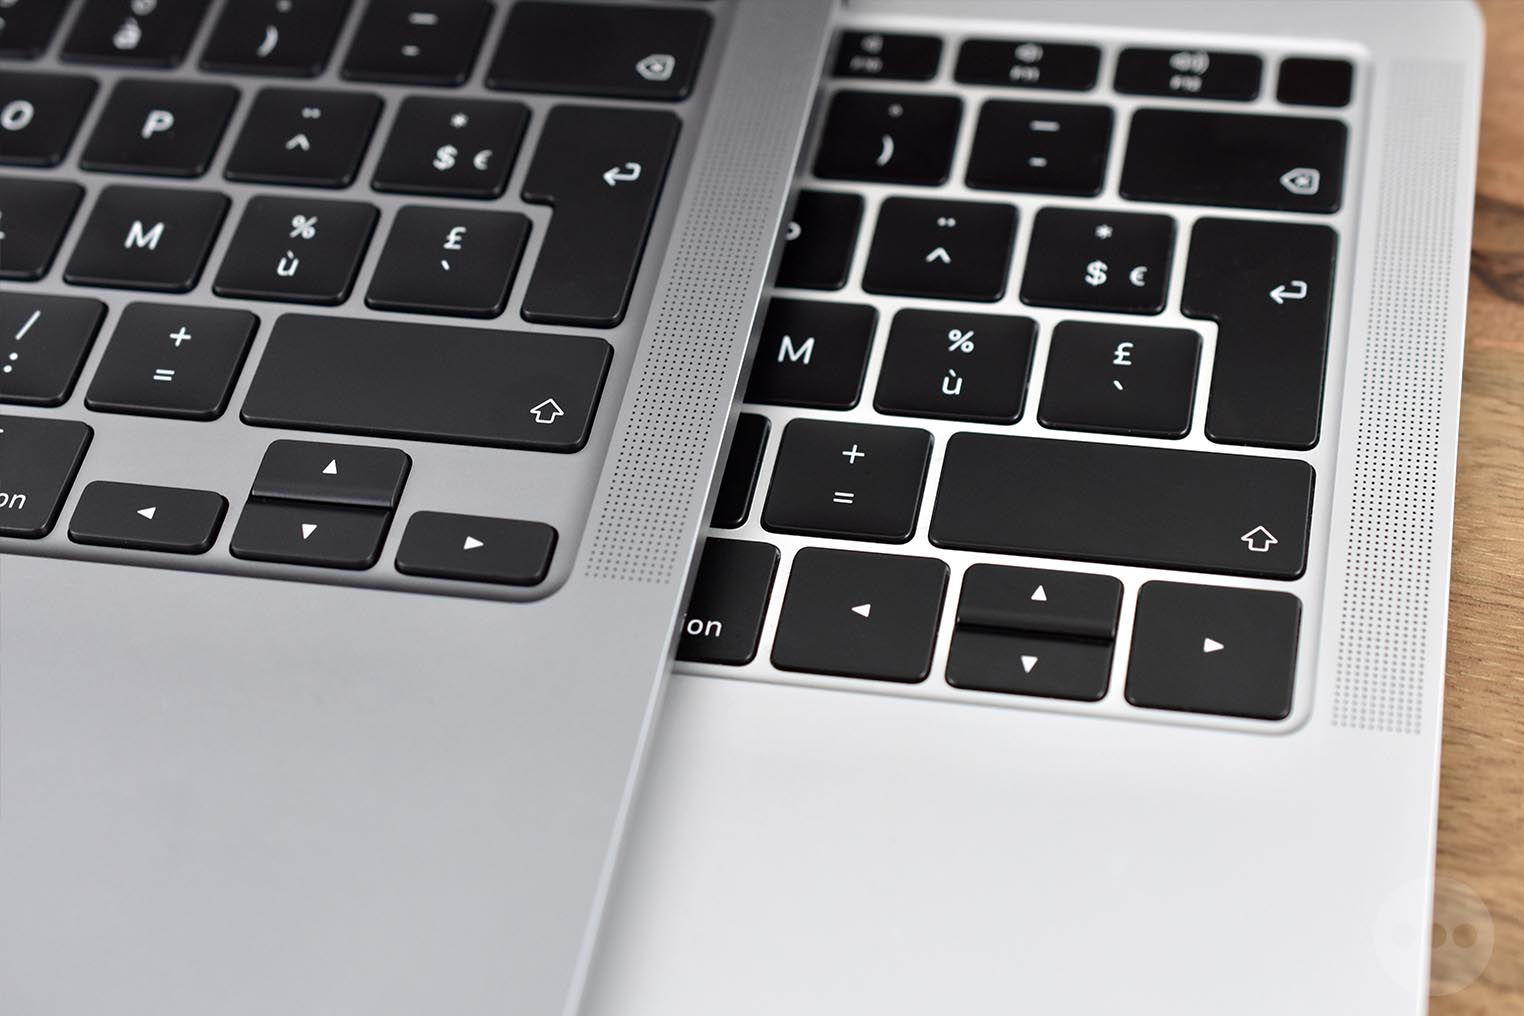 MacBook Air 2020 comparaison touches directionnelles